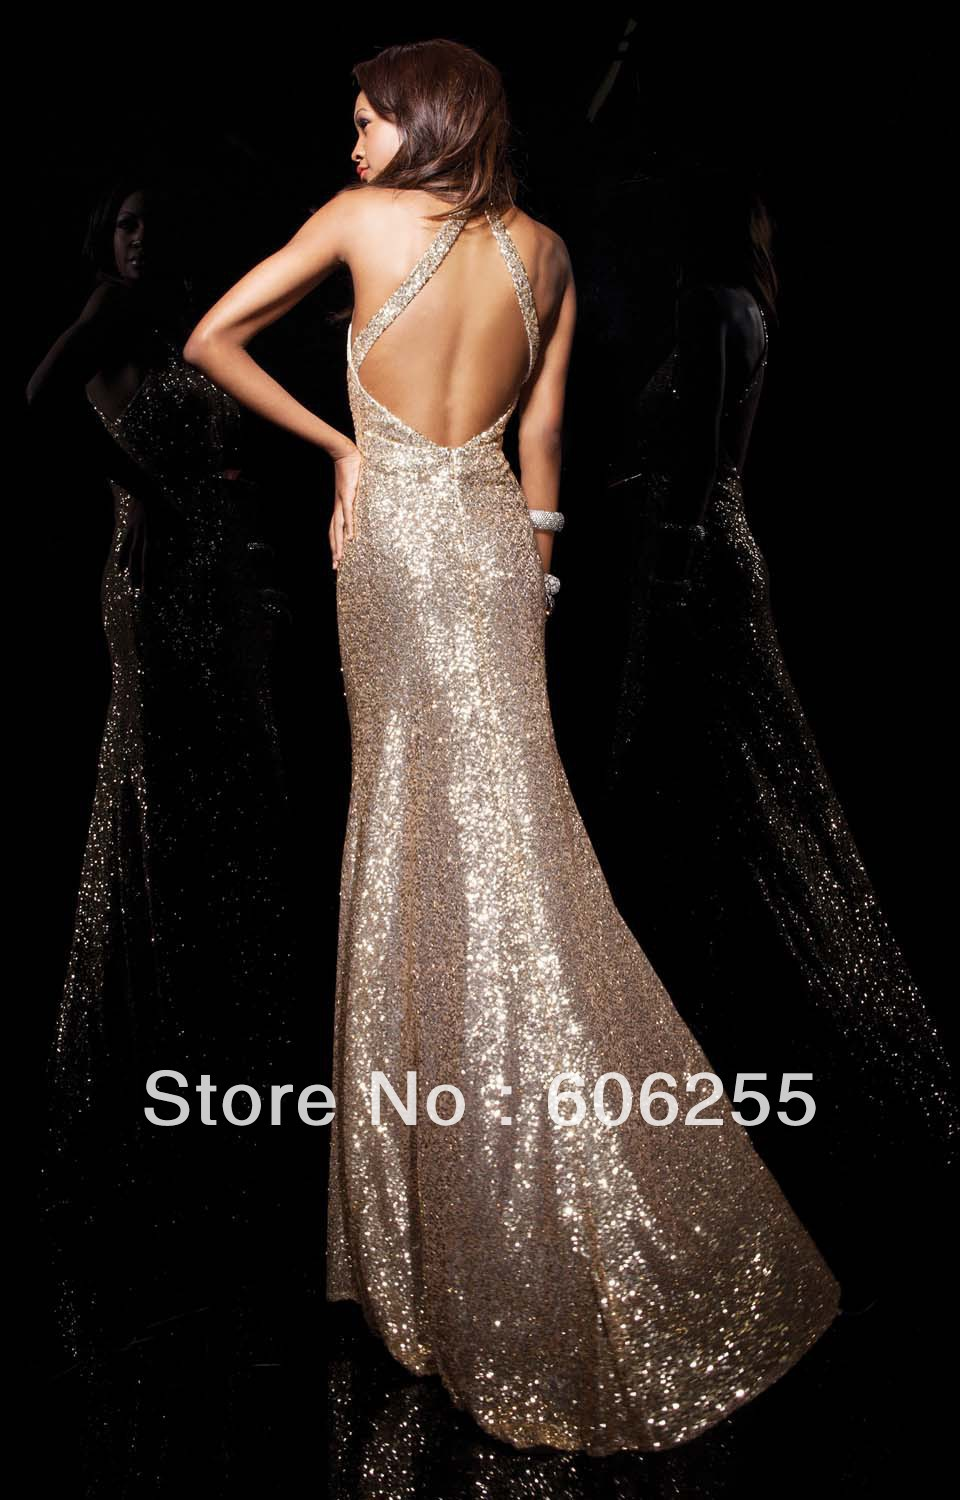 2013 Golden Sheath Halter Evening Dresses Choker Open Back Whith Straps  Sequin Ruching Prom Dress 113728-in Prom Dresses from Weddings   Events on  ... d0d08704a162